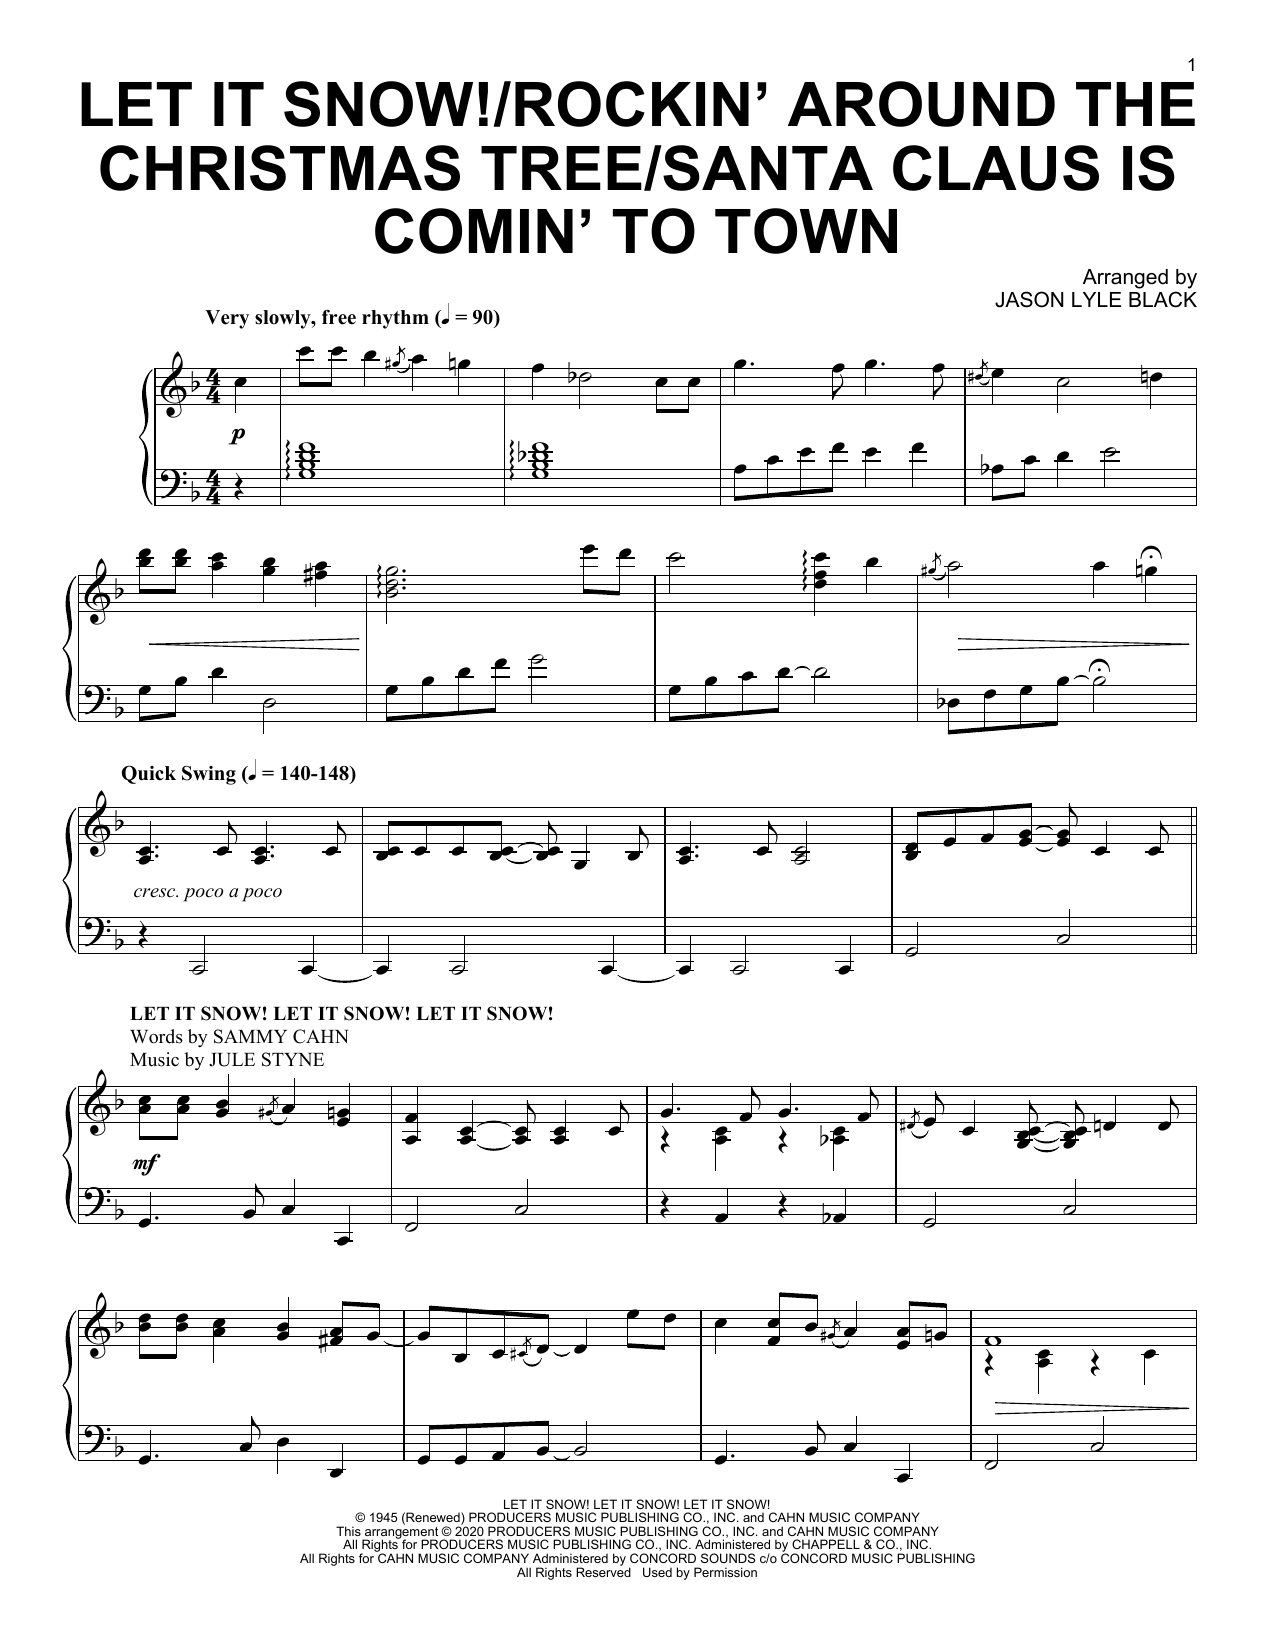 Jason Lyle Black Let It Snow!/Rockin' Around the Christmas Tree/Santa Claus Is Comin' To Town sheet music notes and chords. Download Printable PDF.